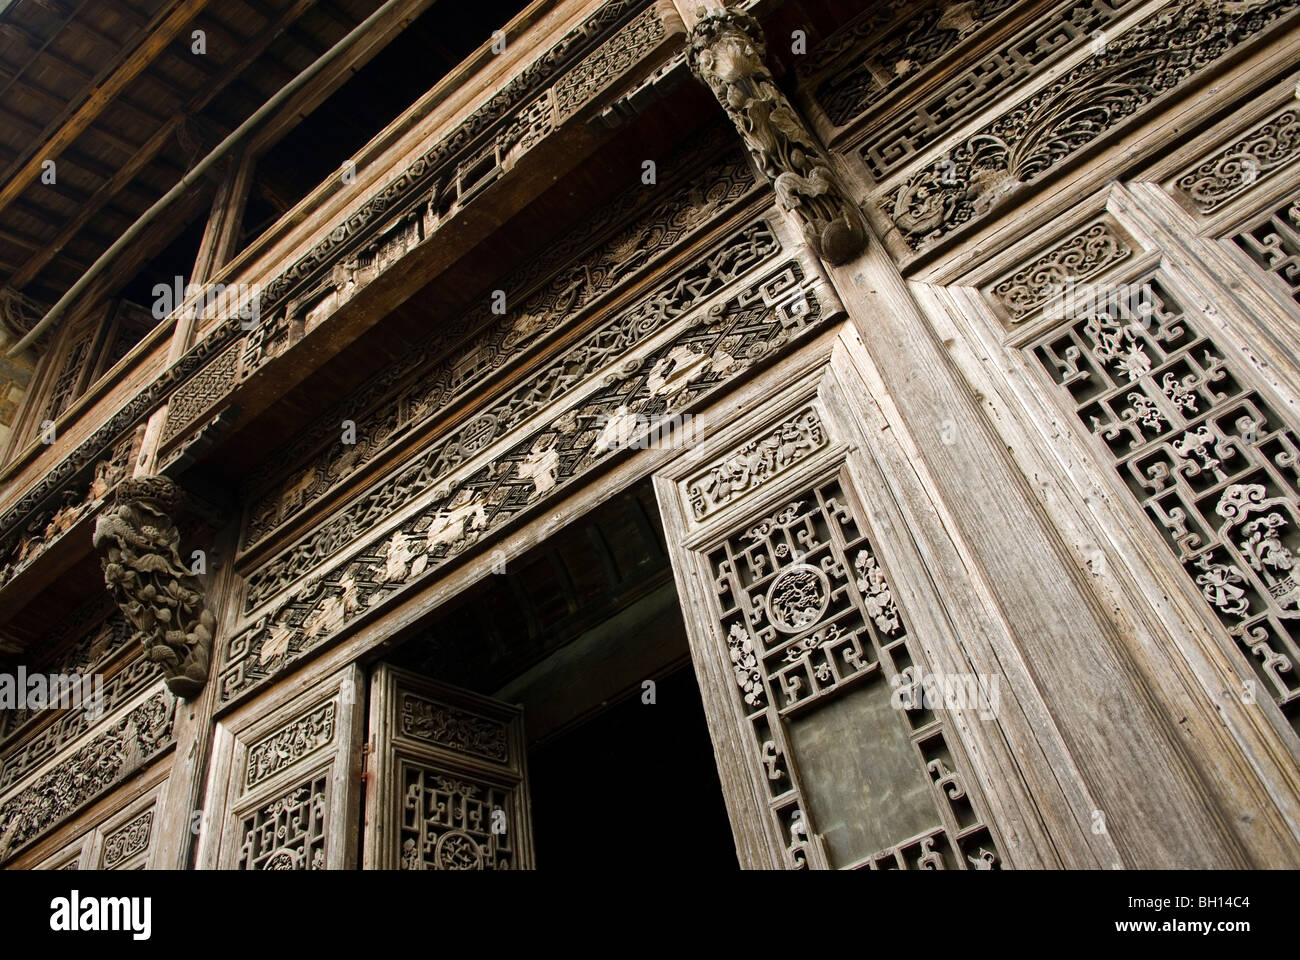 Elaborately wood carved doors and panels in ancient wealthy merchant's dwelling. Sixi. Jiangxi, China. - Stock Image